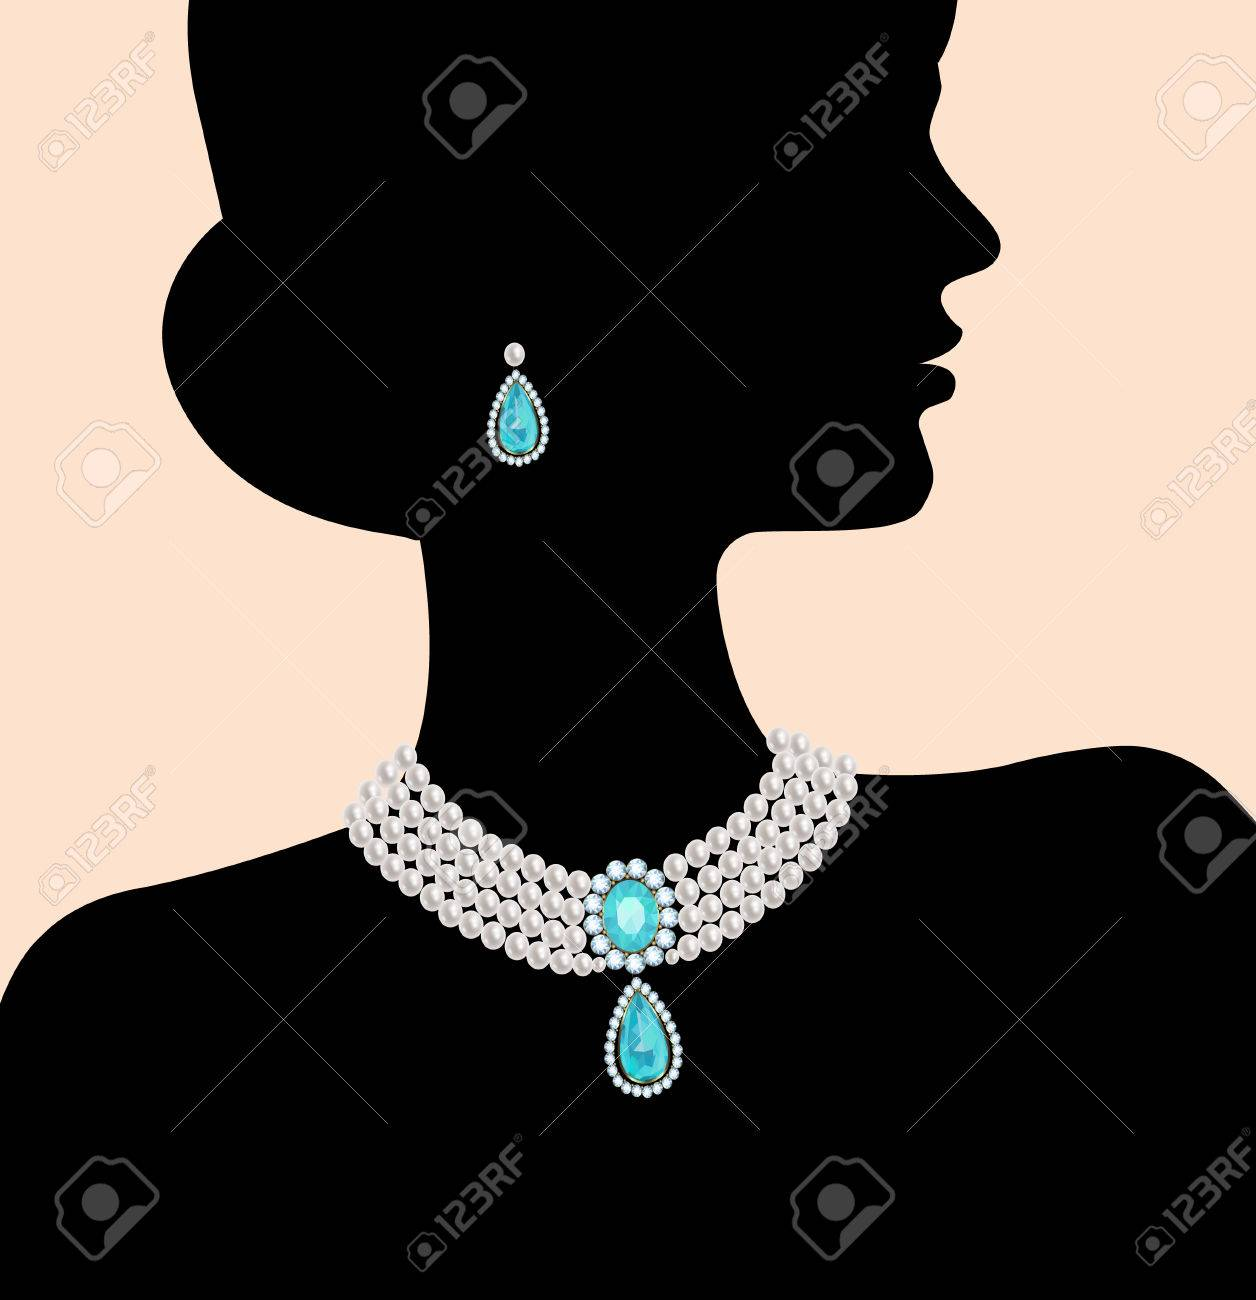 Silhouette Of A Woman With A Pearl Necklace And Earrings Stock Vector   48318202